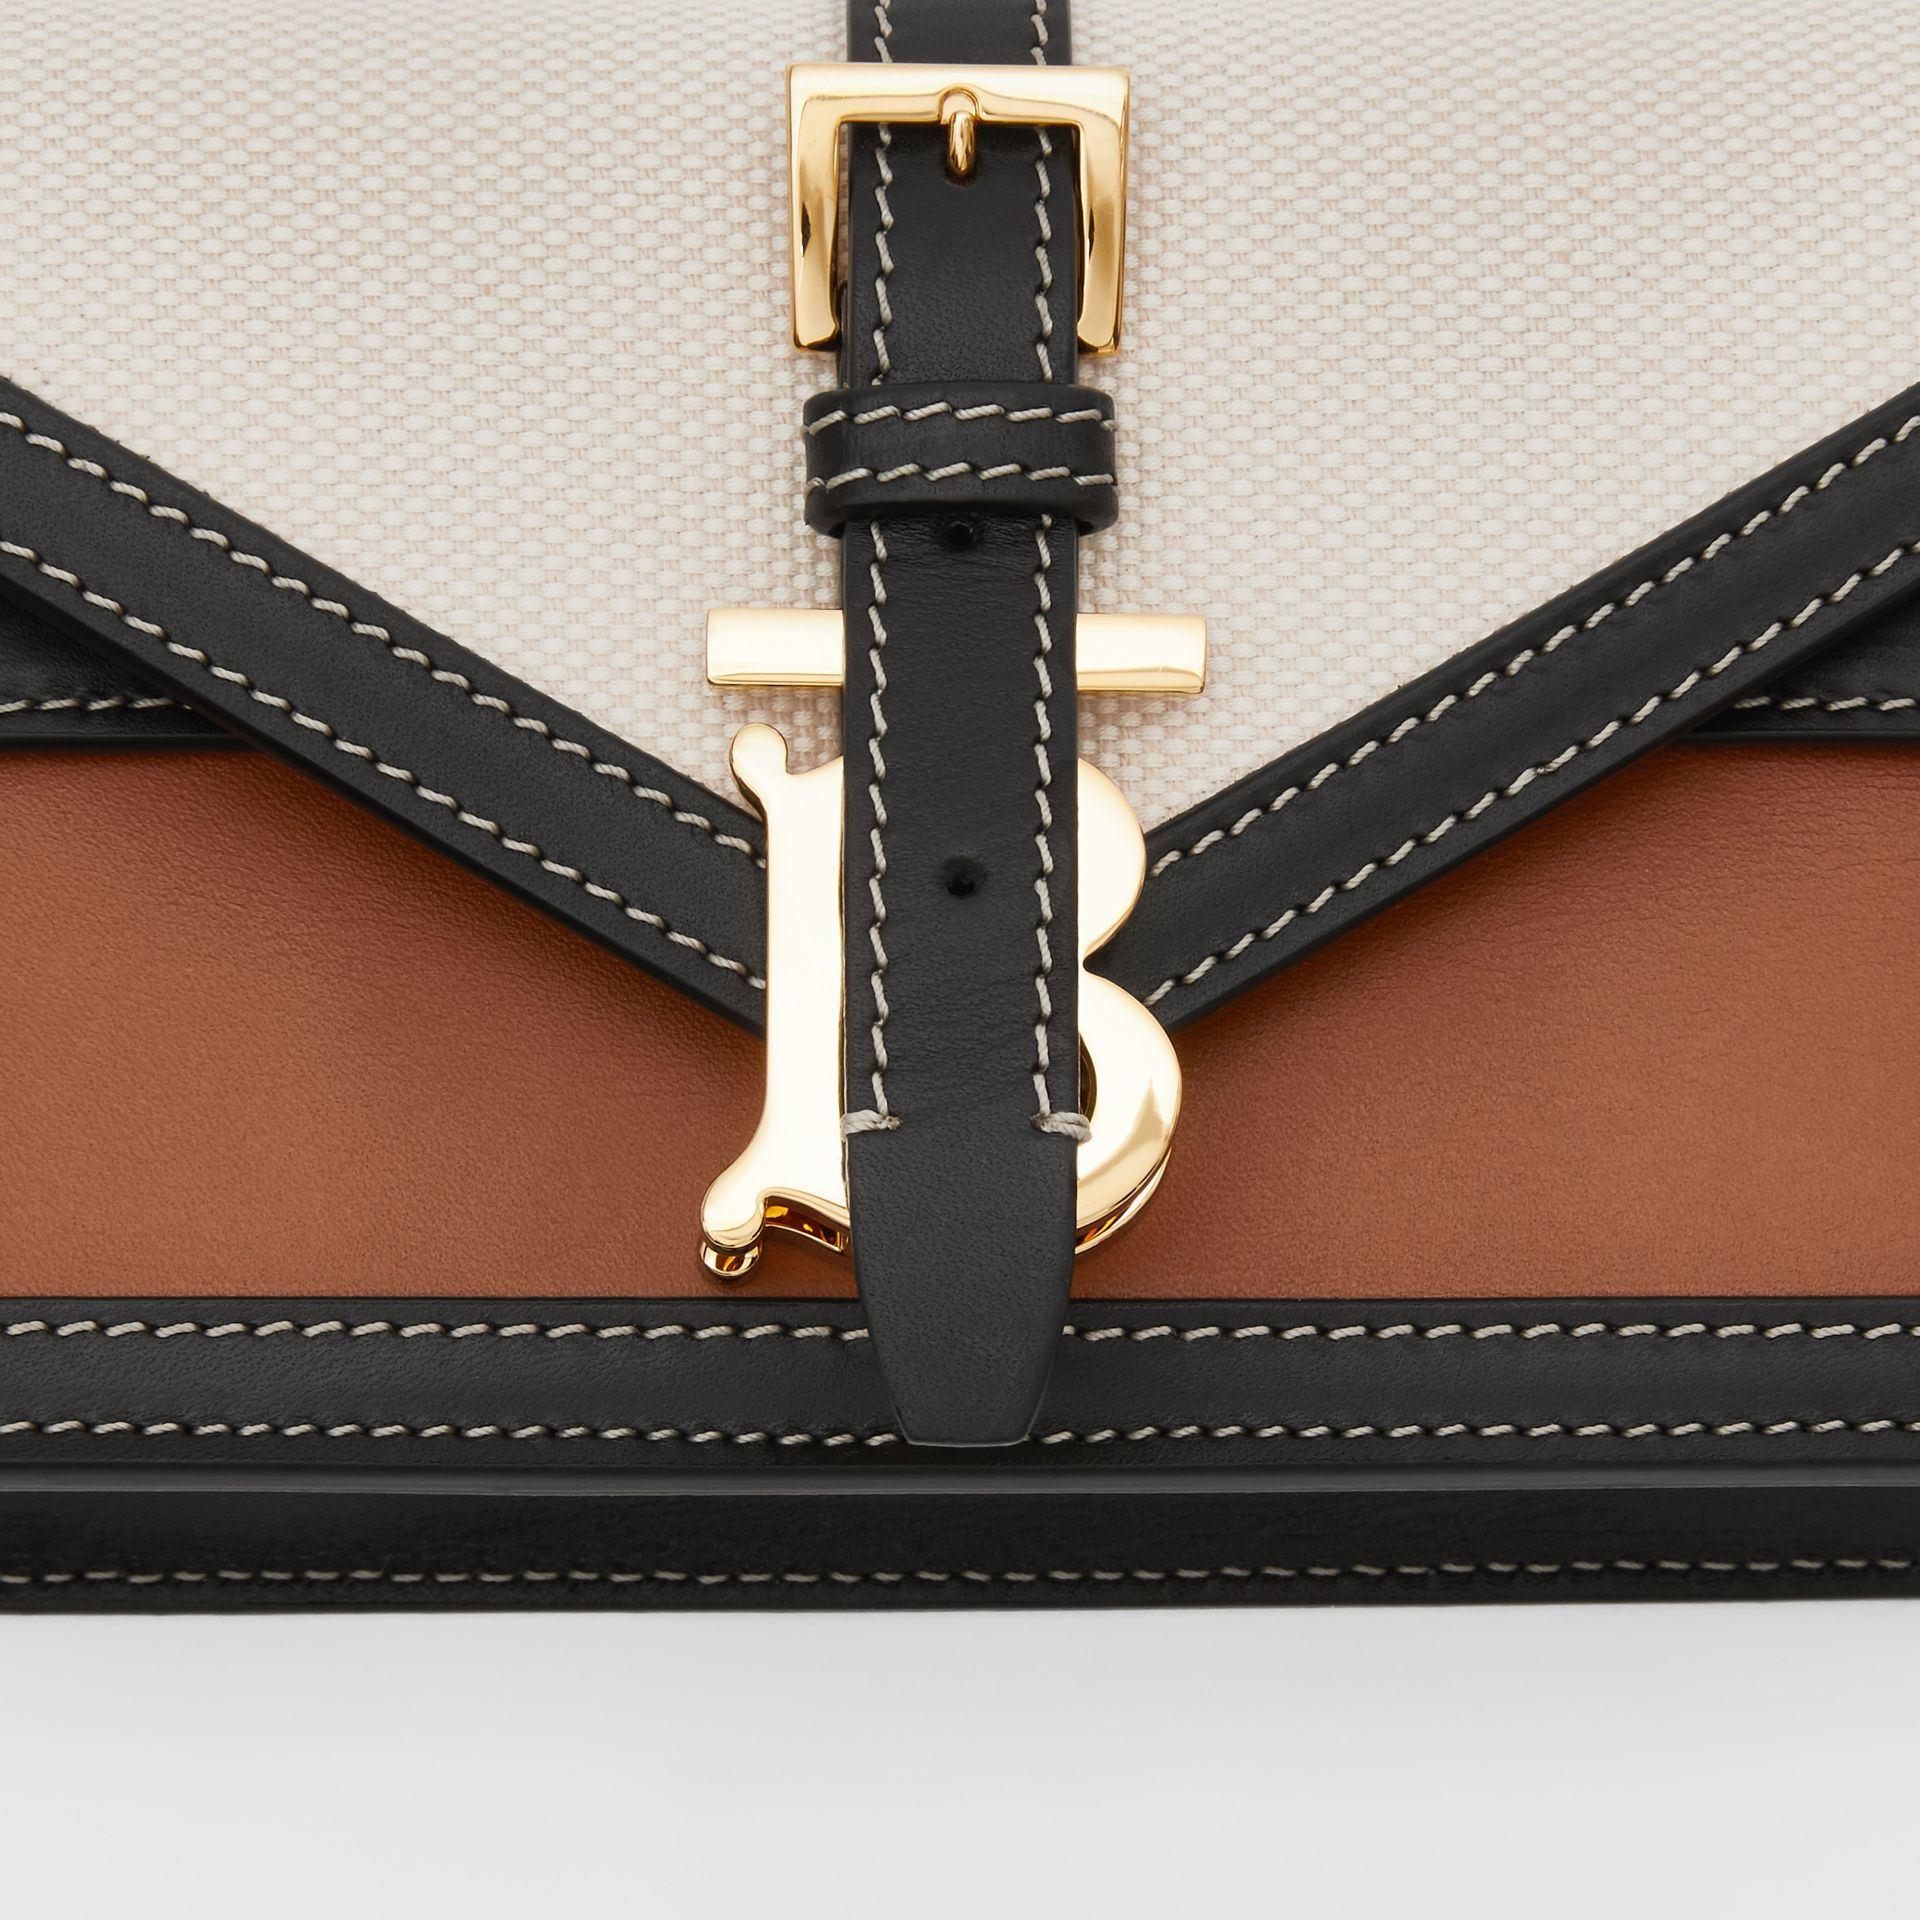 Mini Canvas and Leather TB Envelope Clutch in Tan - Women | Burberry - gallery image 1